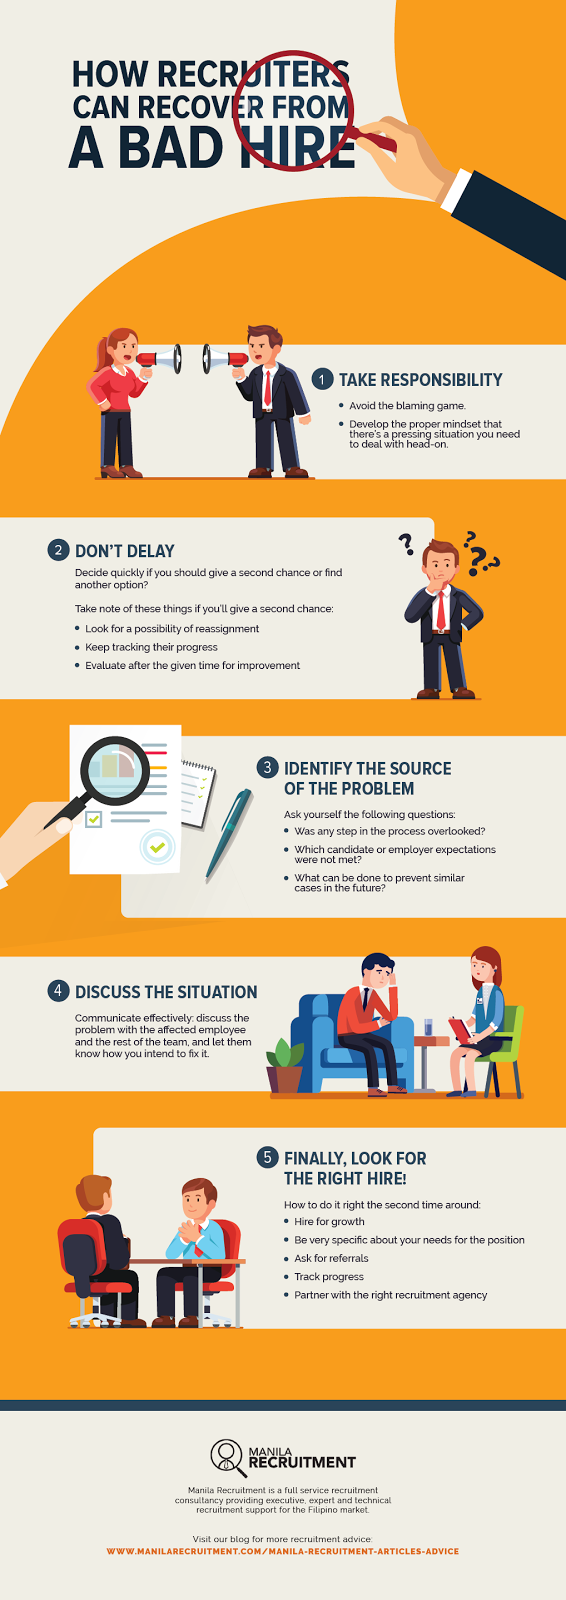 How Recruiters Can Recover From A Bad Hire [infographic]